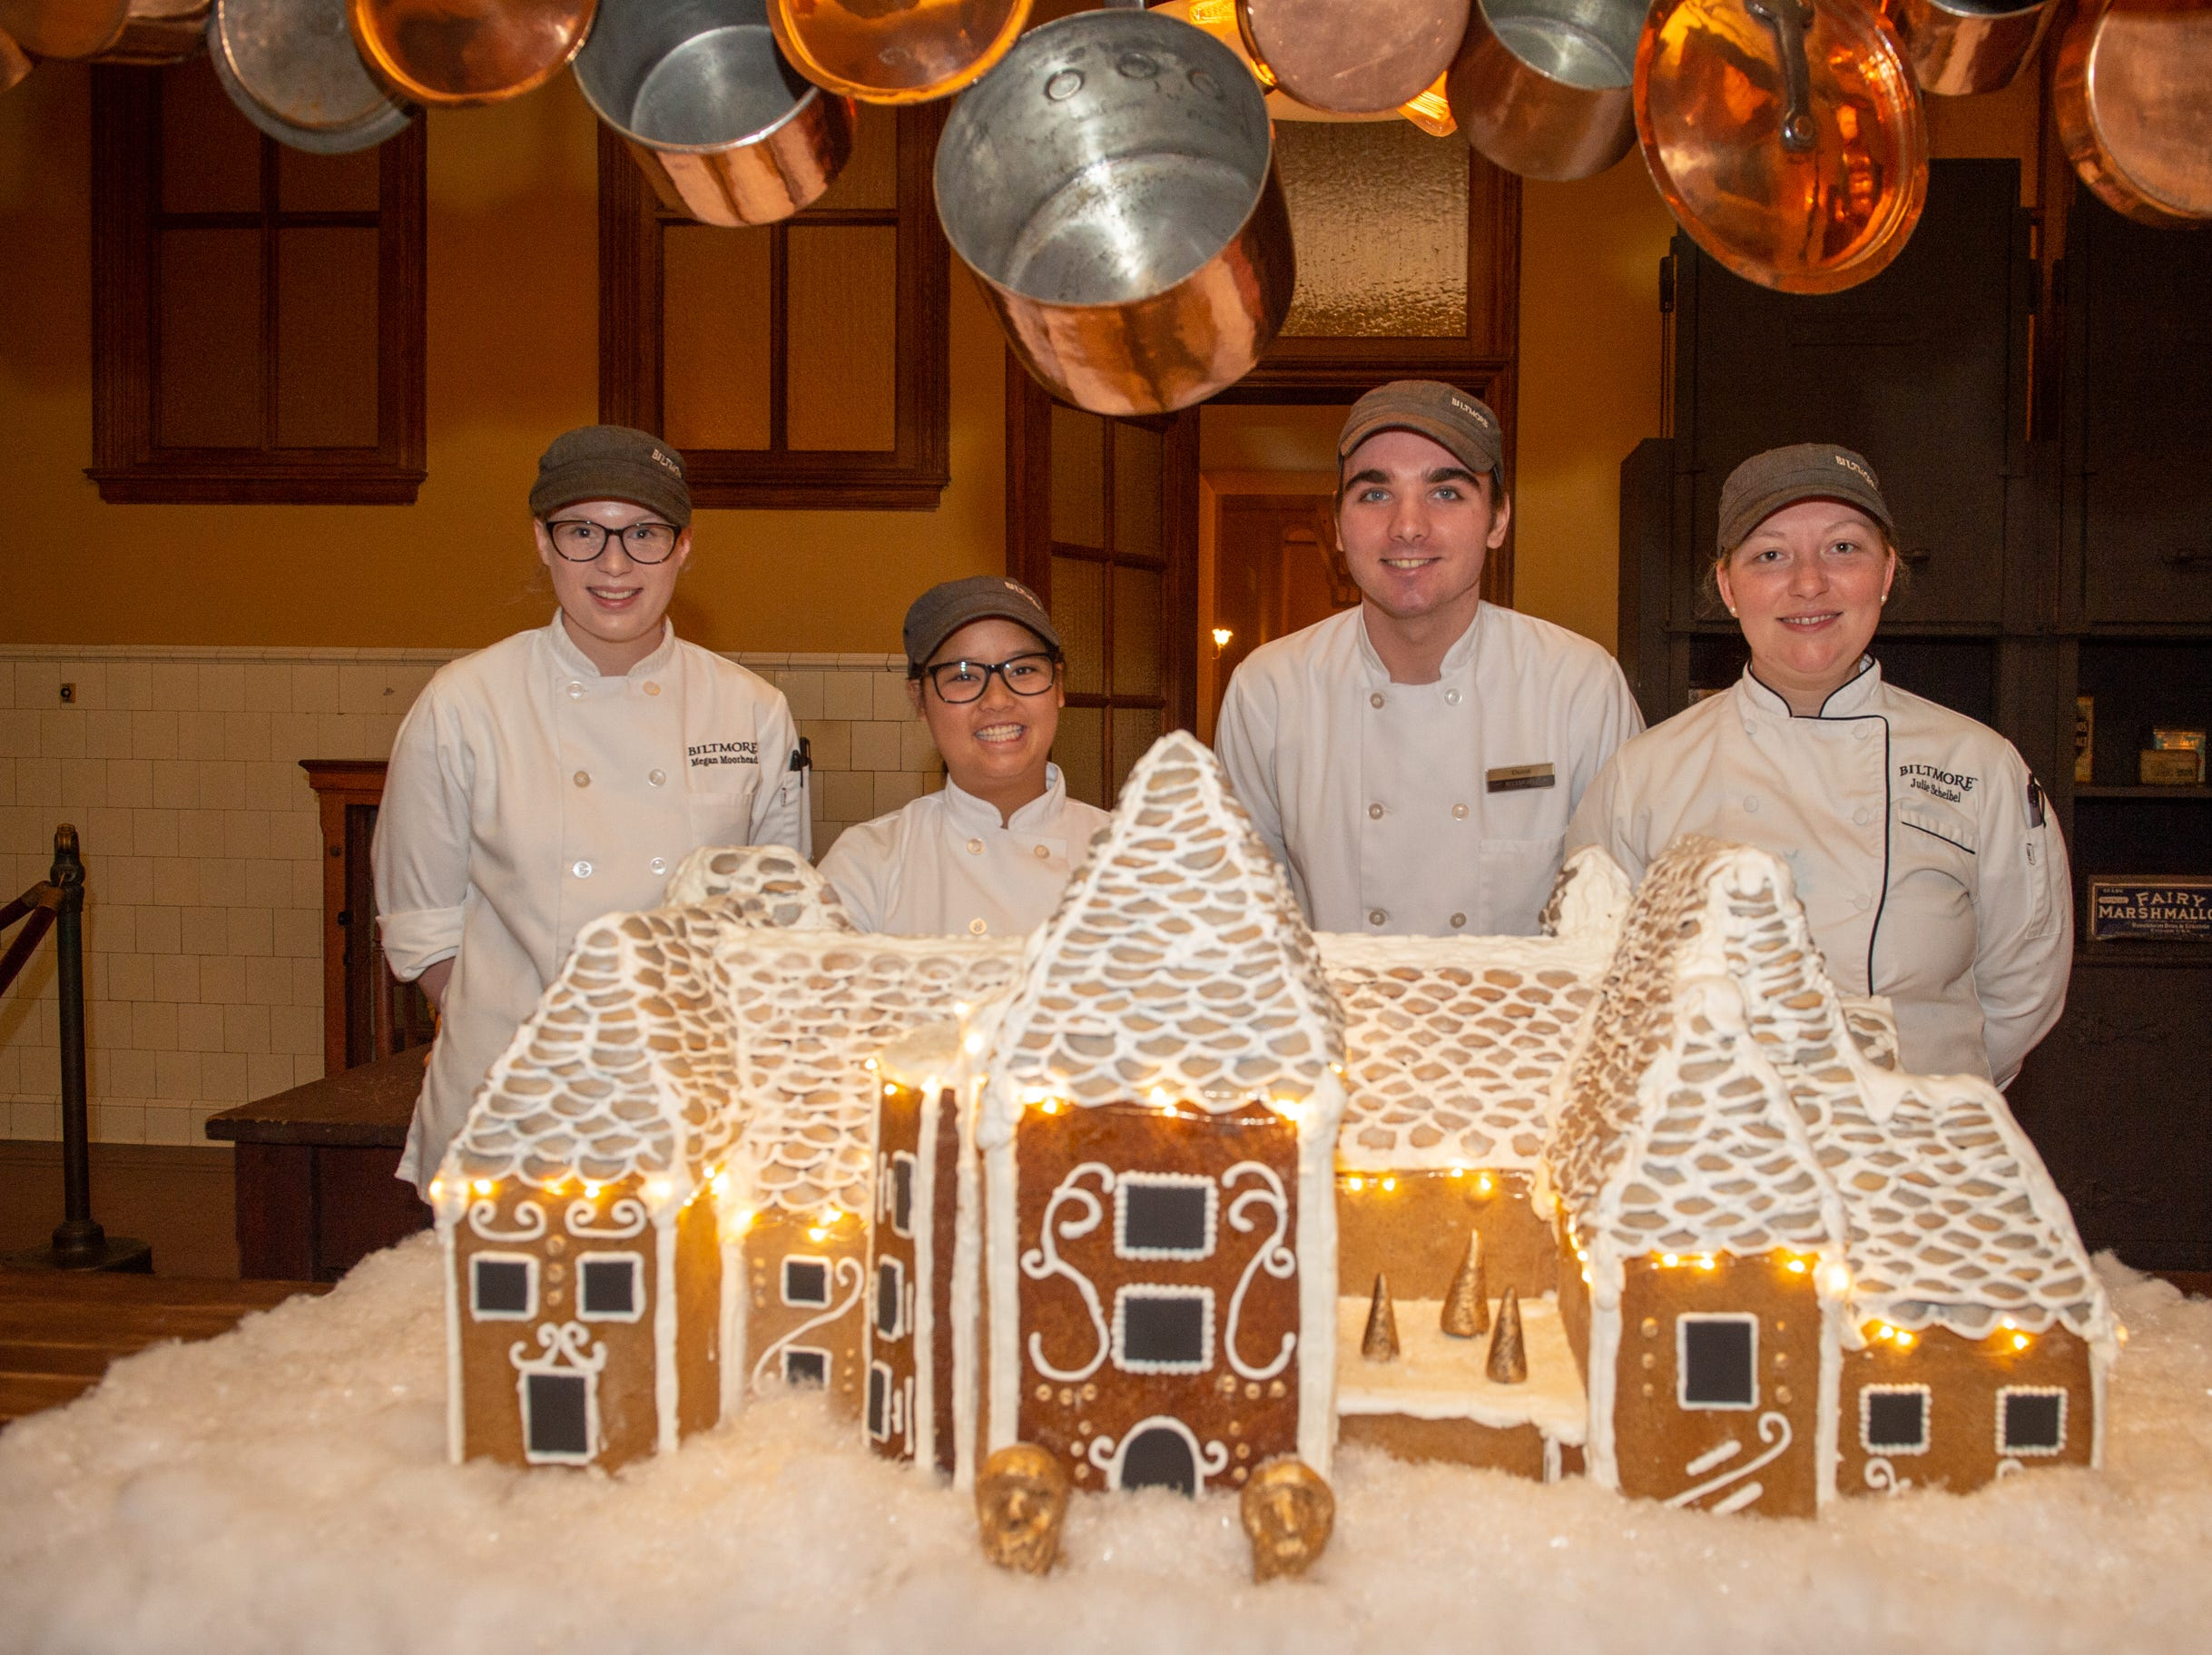 From left, Biltmore pastry demi chef Megan Moorhead, pastry cooks Kayla Breedlove and Deron Noel and pastry chef Julie Scheibel stand behind the completed gingerbread house in the Biltmore Estate kitchen the morning of Nov. 2, 2018. The lights are new this year, an addition Scheibel cooked up.